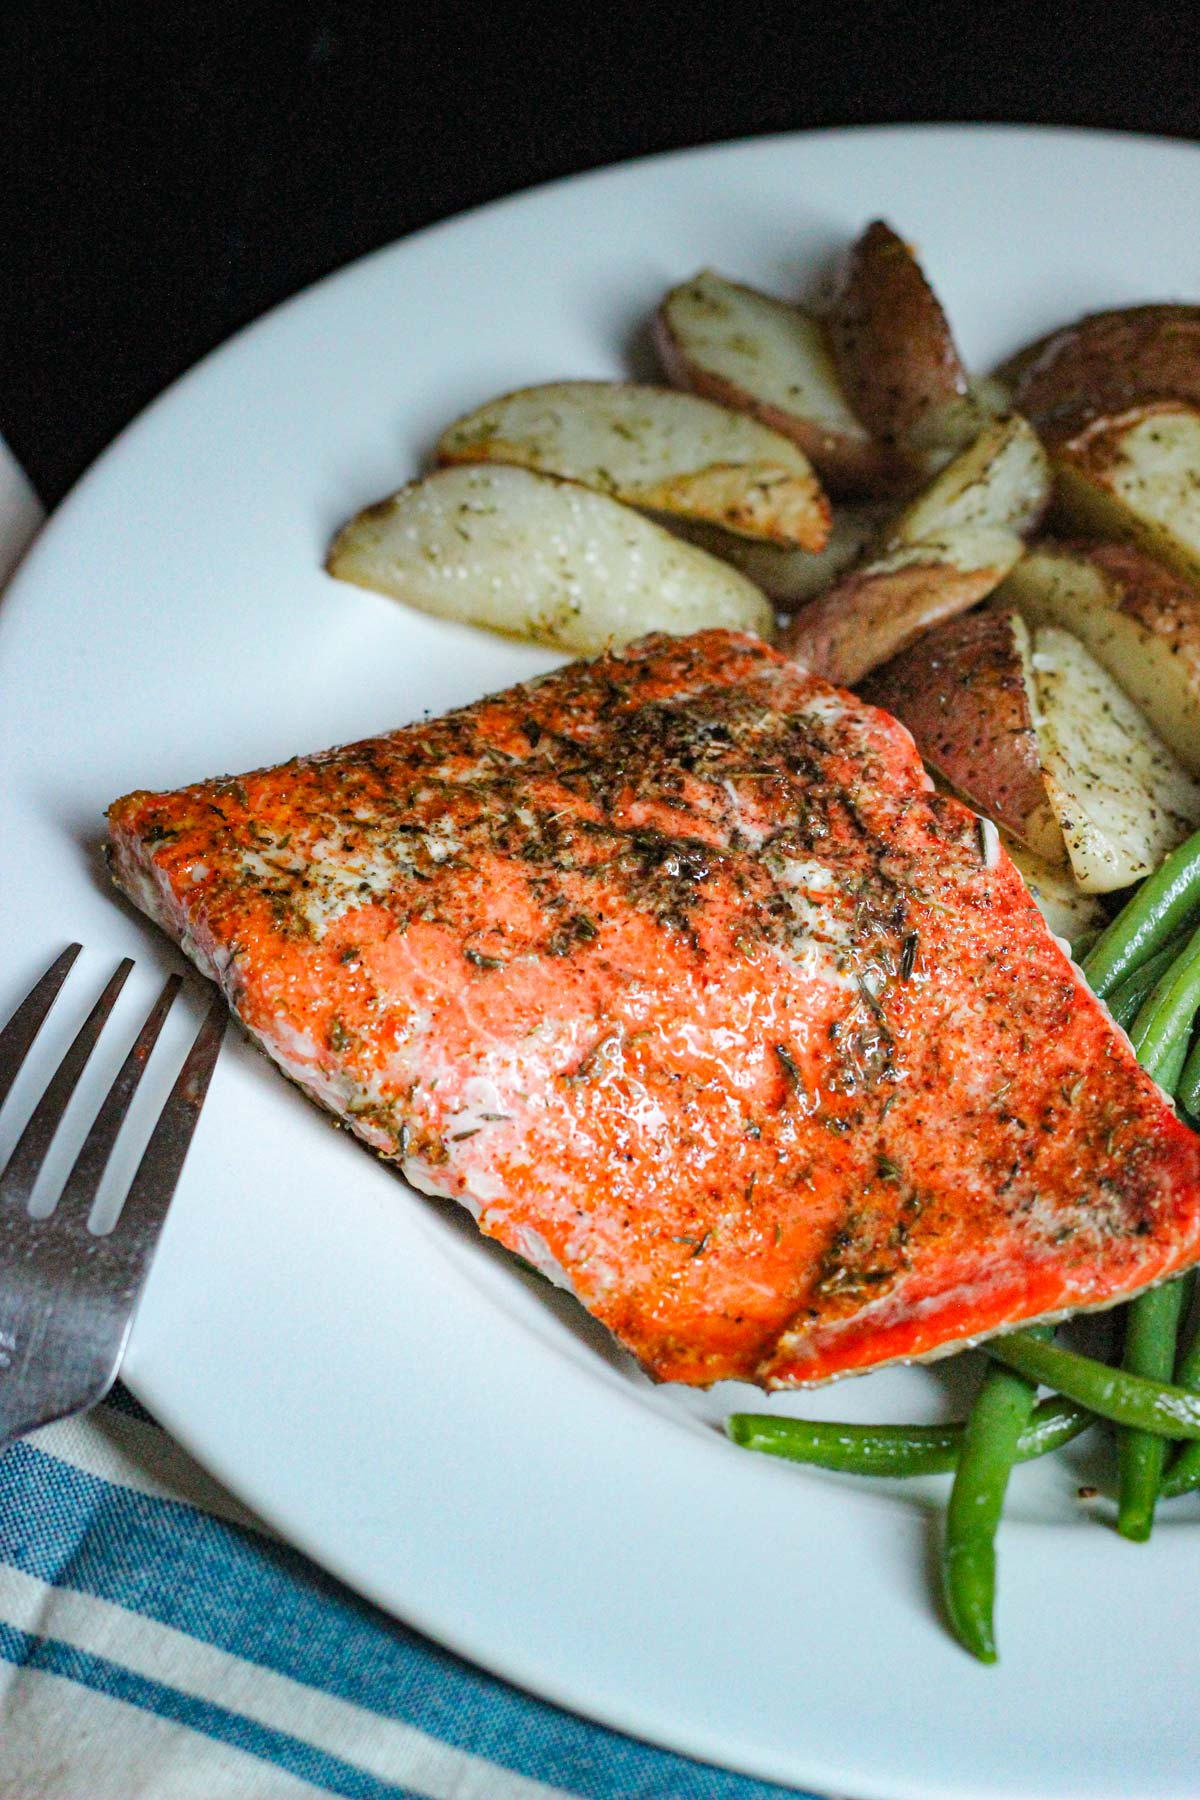 salmon with spicy fish seasoning plated with potatoes and green beans.